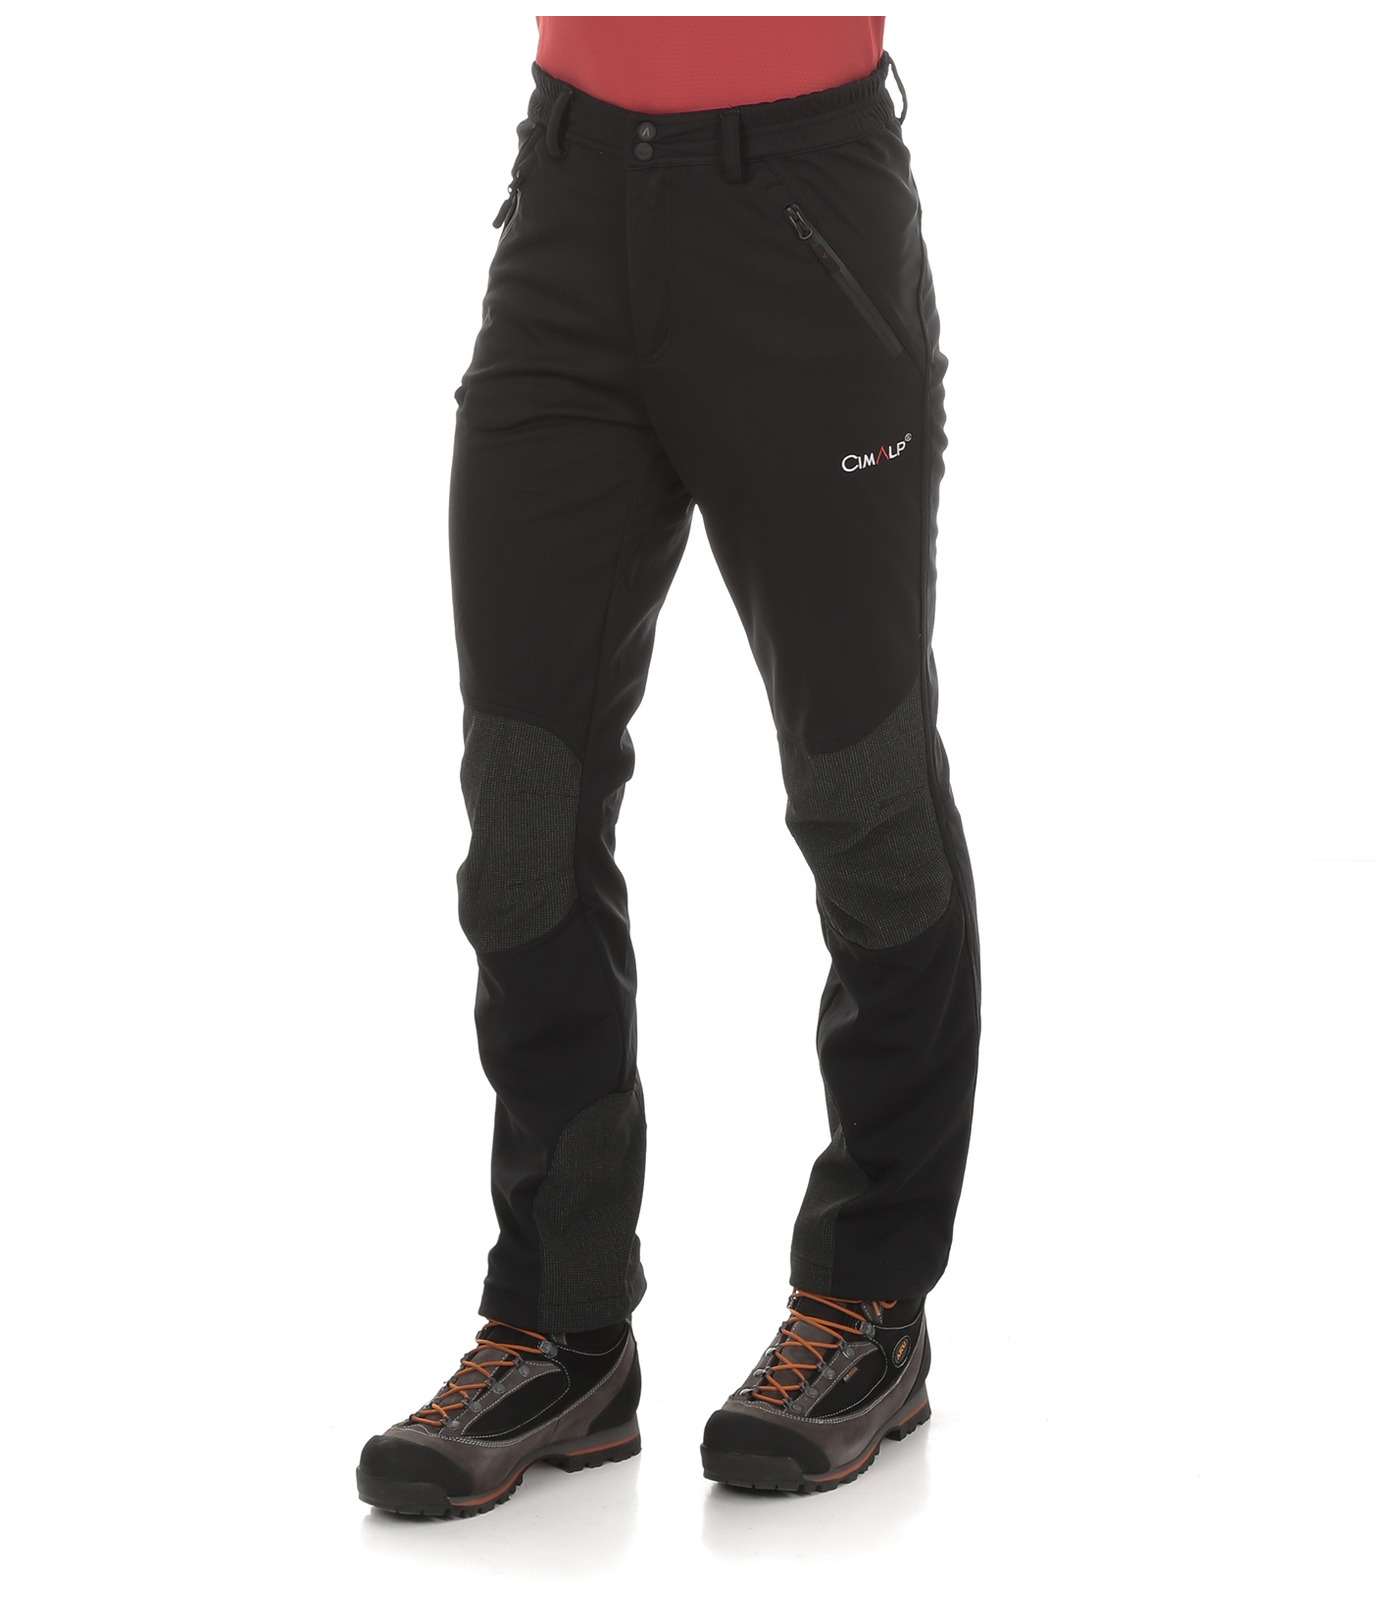 Pantalon de montagne chaud Softshell 3 couches FUSION